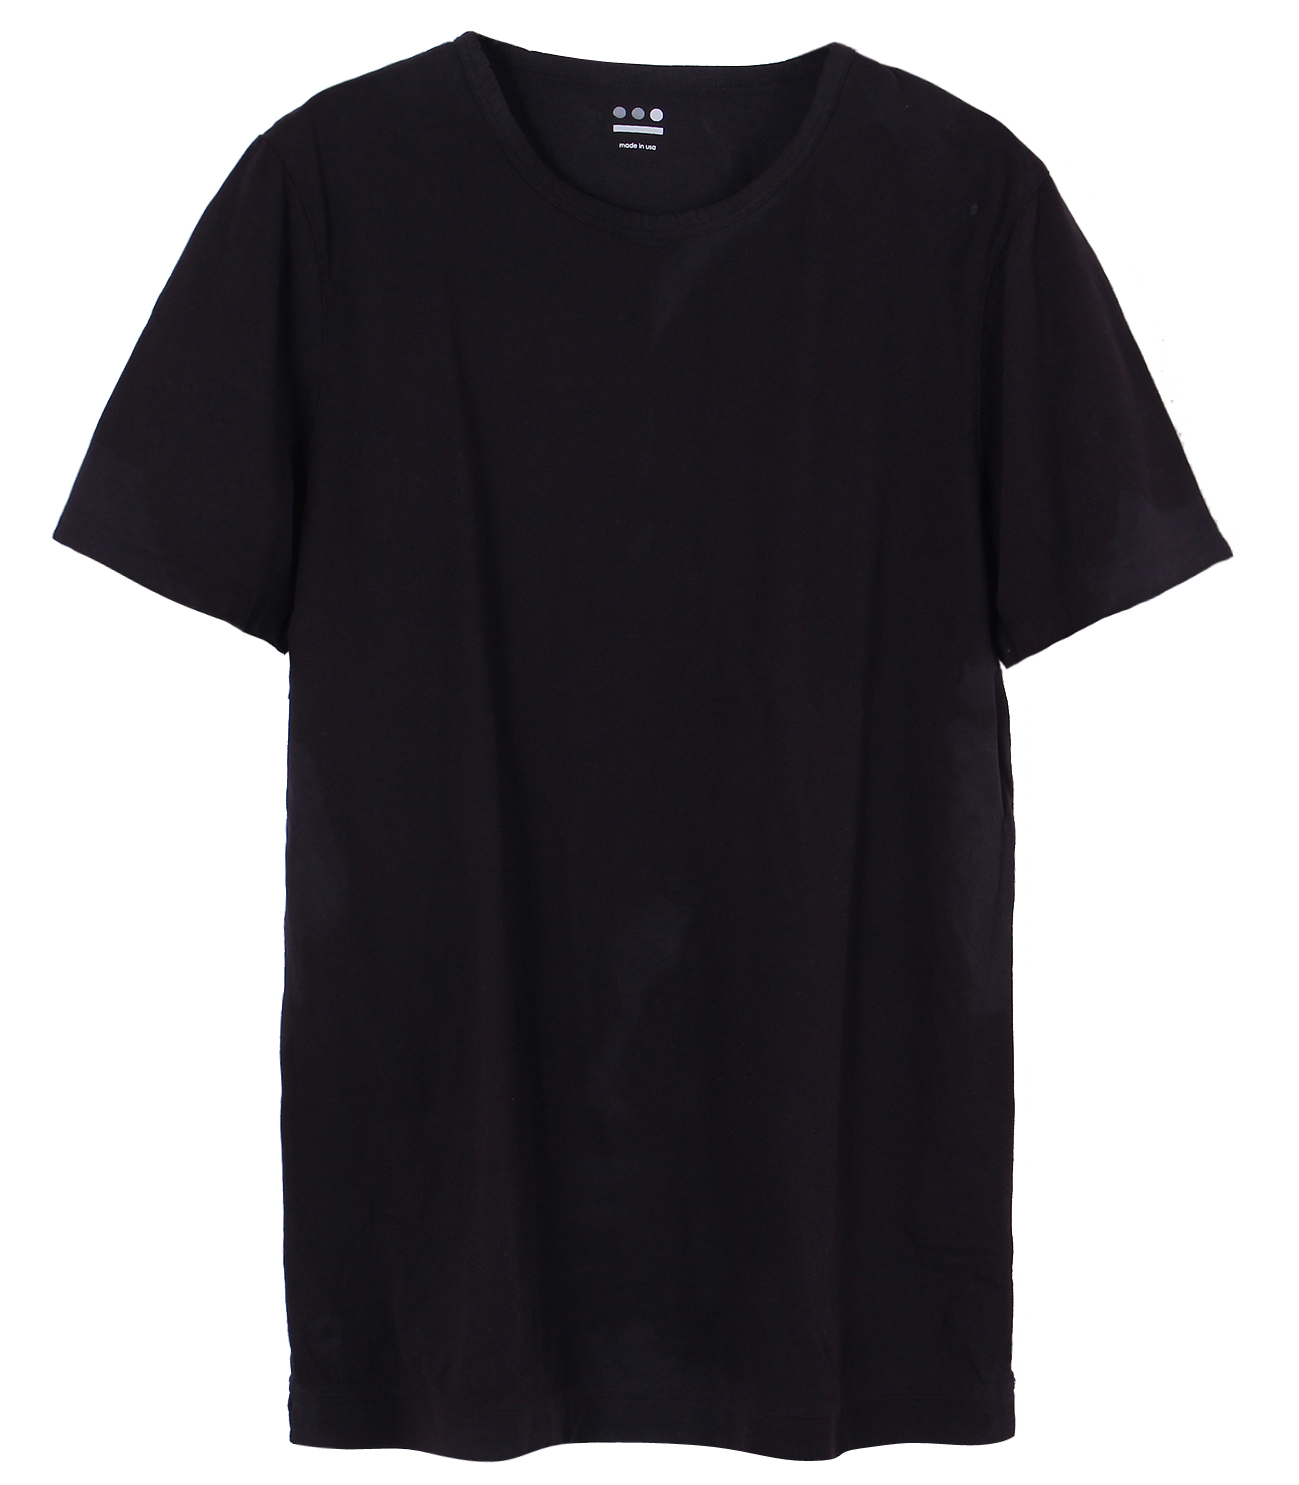 James (new basic line) sanded jersey 詳細画像 black 1